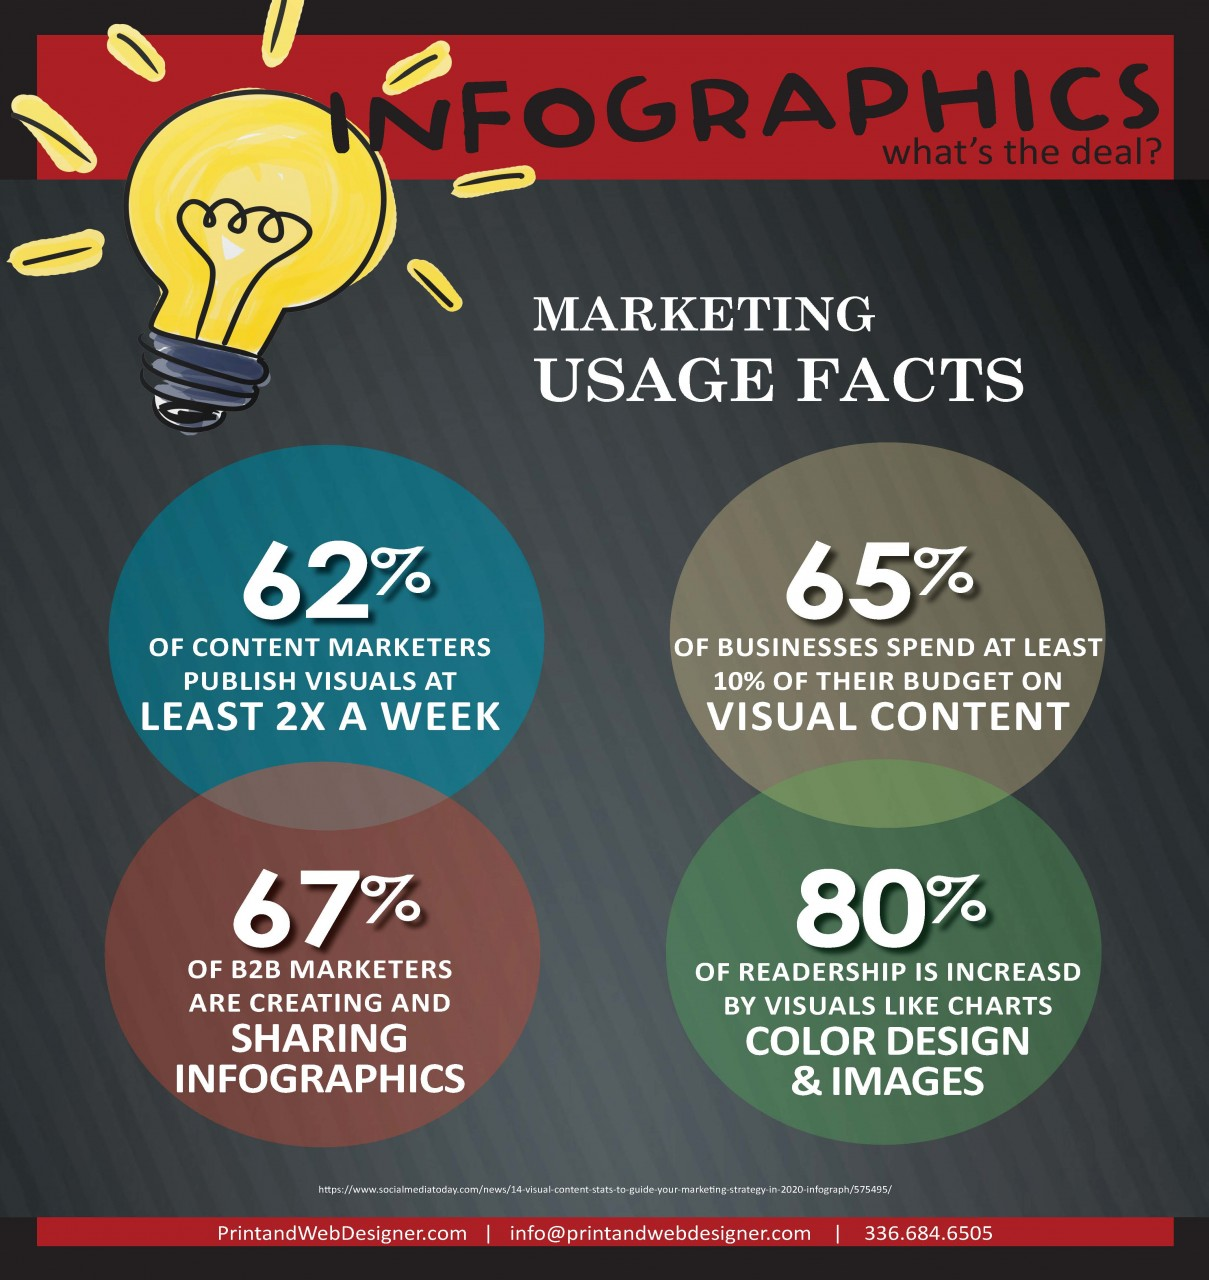 What is an Infographic and What are its Benefits?